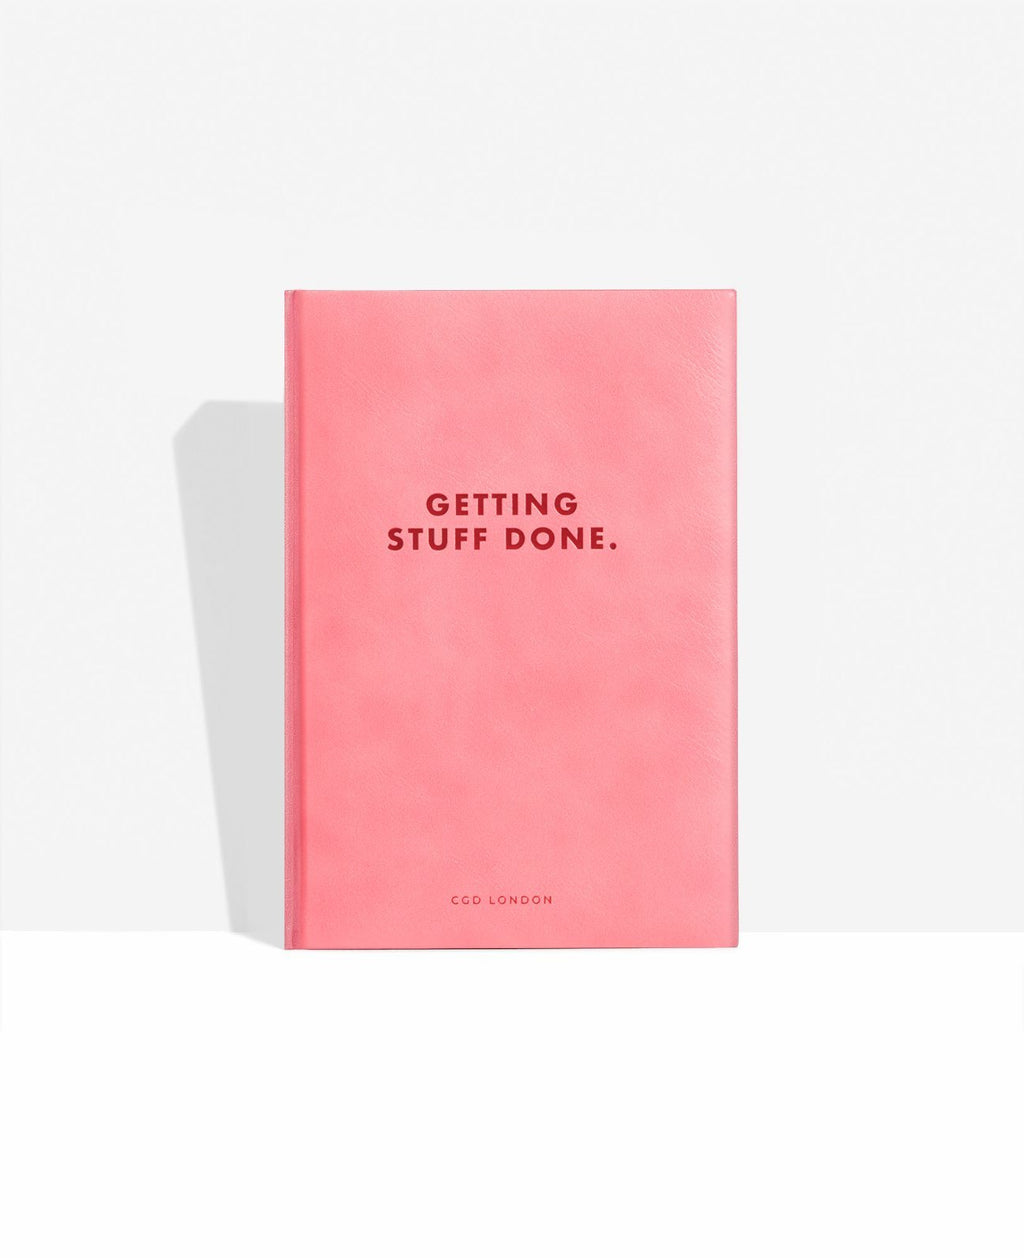 Getting Stuff Done Planner - CGD LONDON ?id=13429854208023